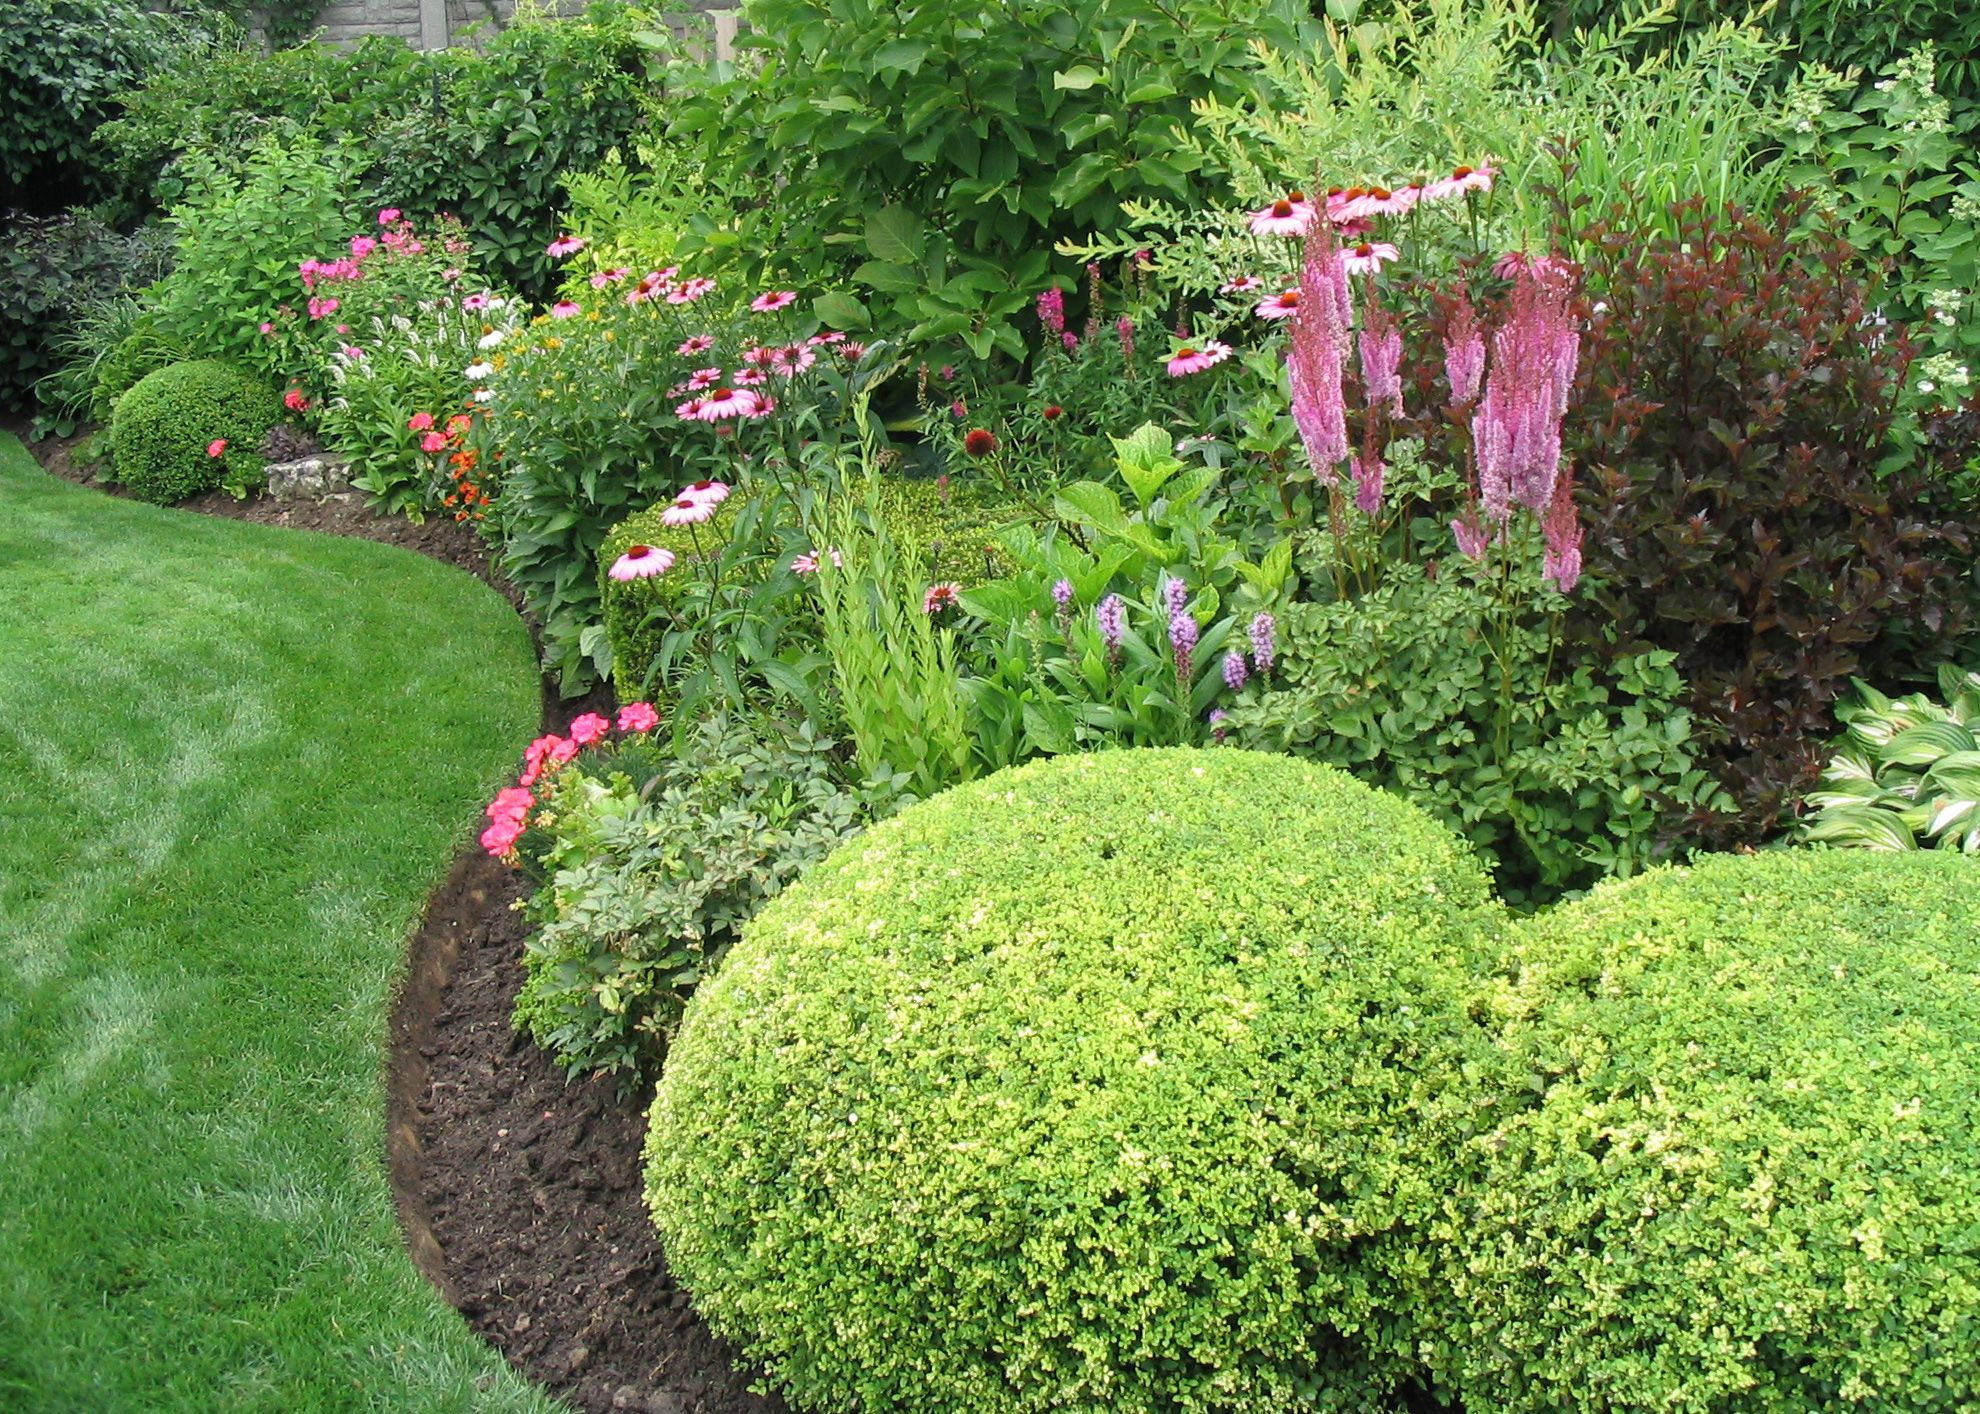 Common landscaping bushes inspiring landscaping bushes for Garden design ideas with hedges